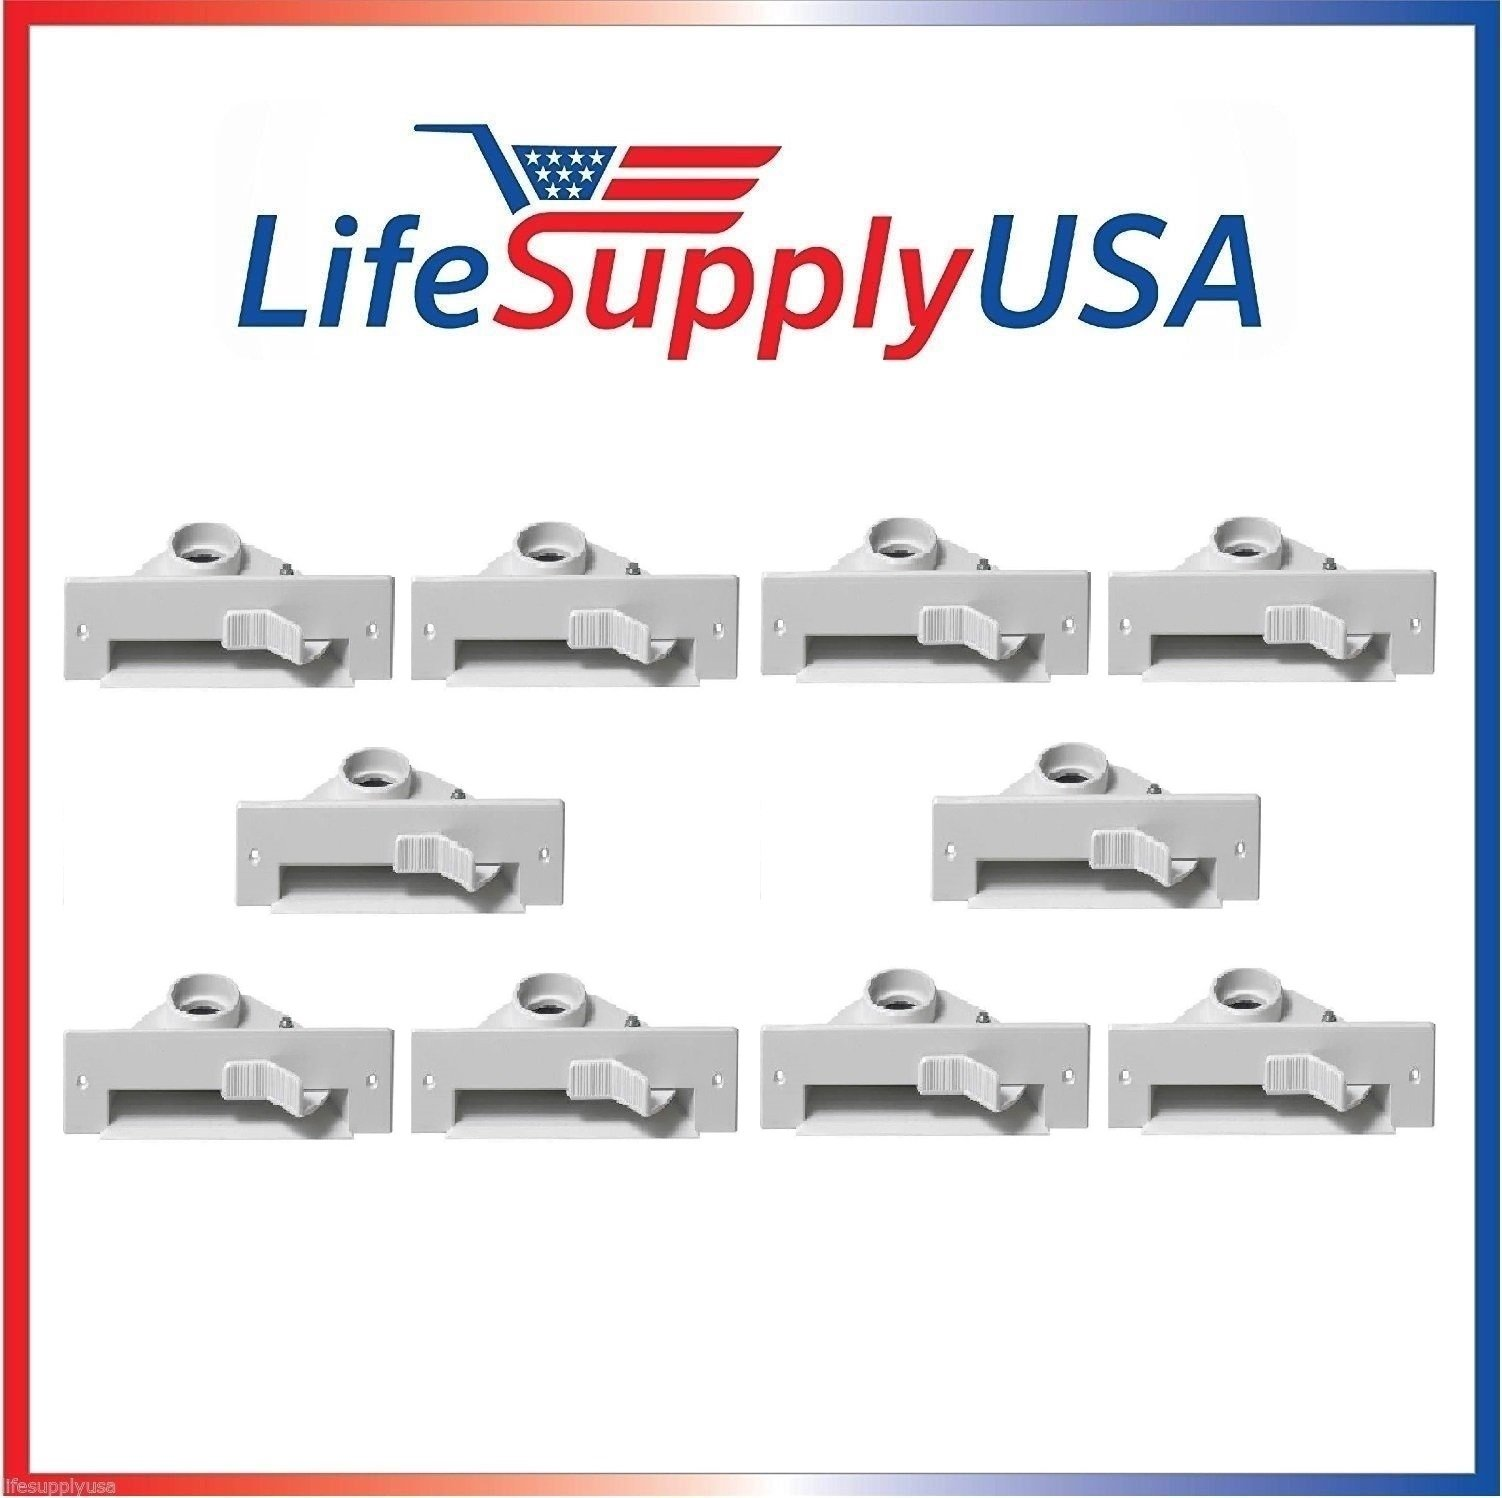 LifeSupplyUSA 10 New Central VAC PAN Vacuum Automatic Dustpan Sweep Inlet VALVES in White